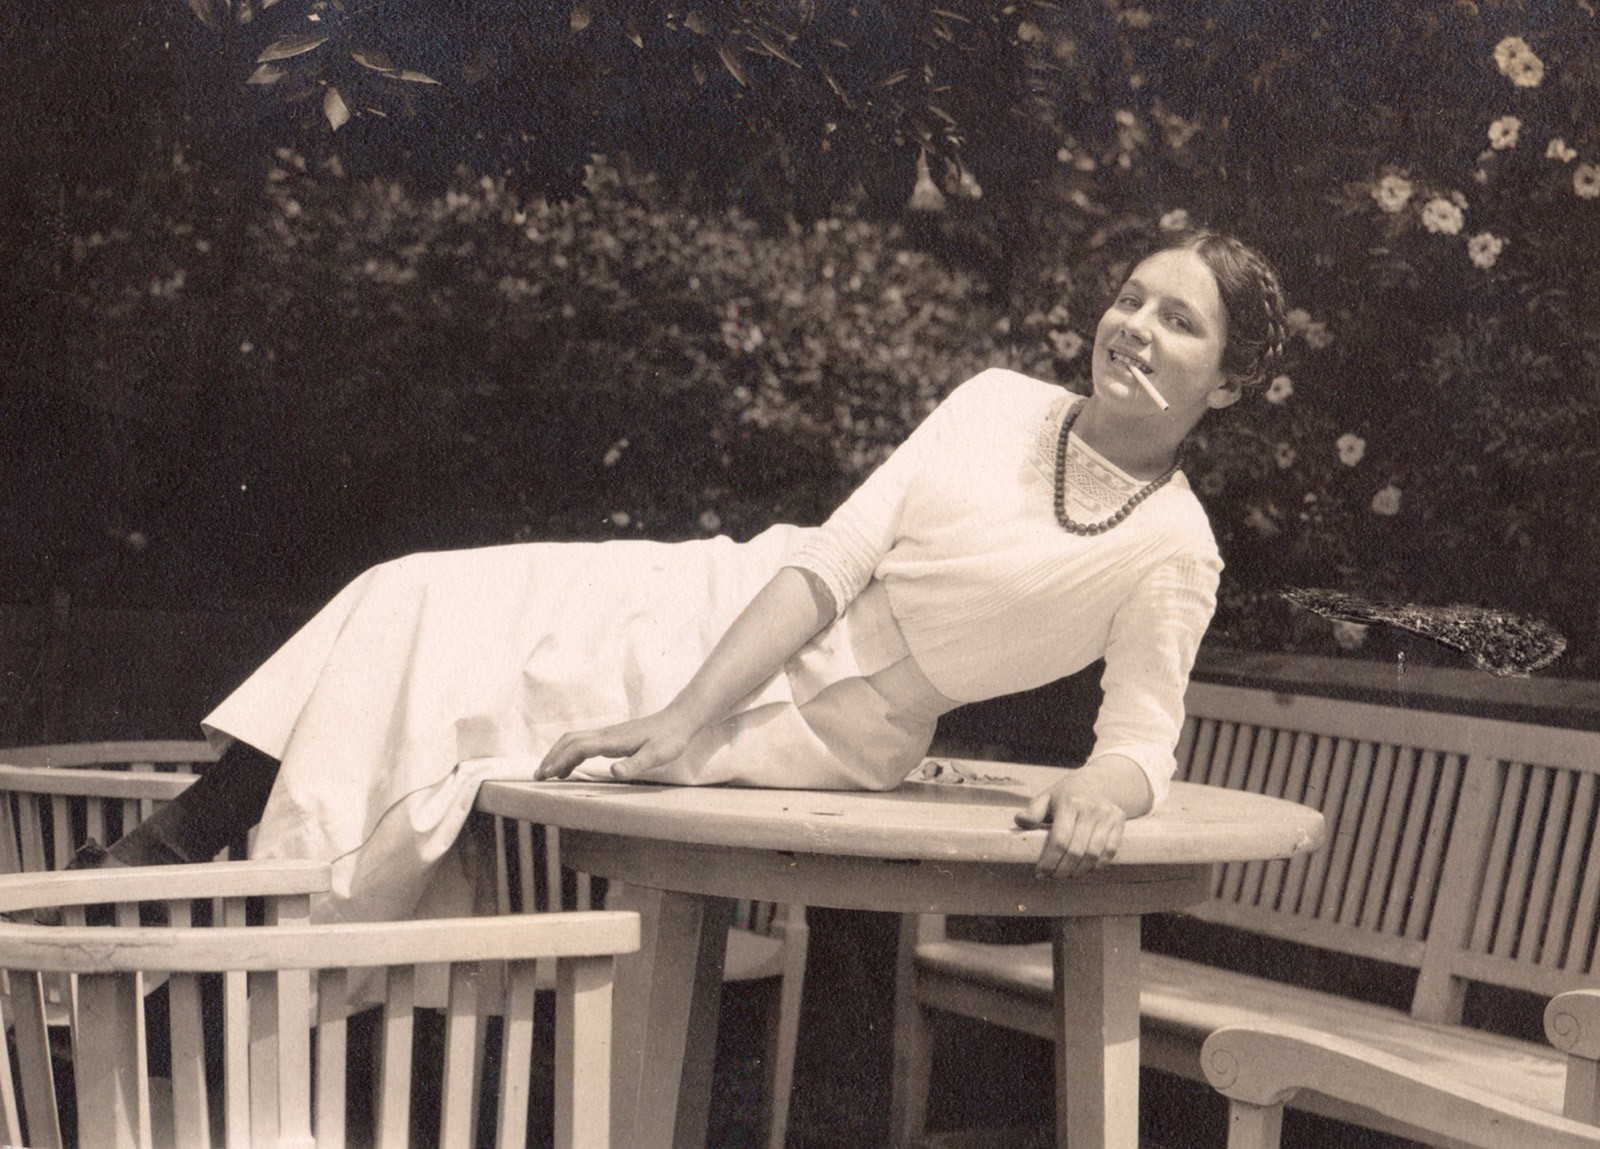 Eleonora als Teenager in Berlin, Sommer 1914, © Privatbesitz